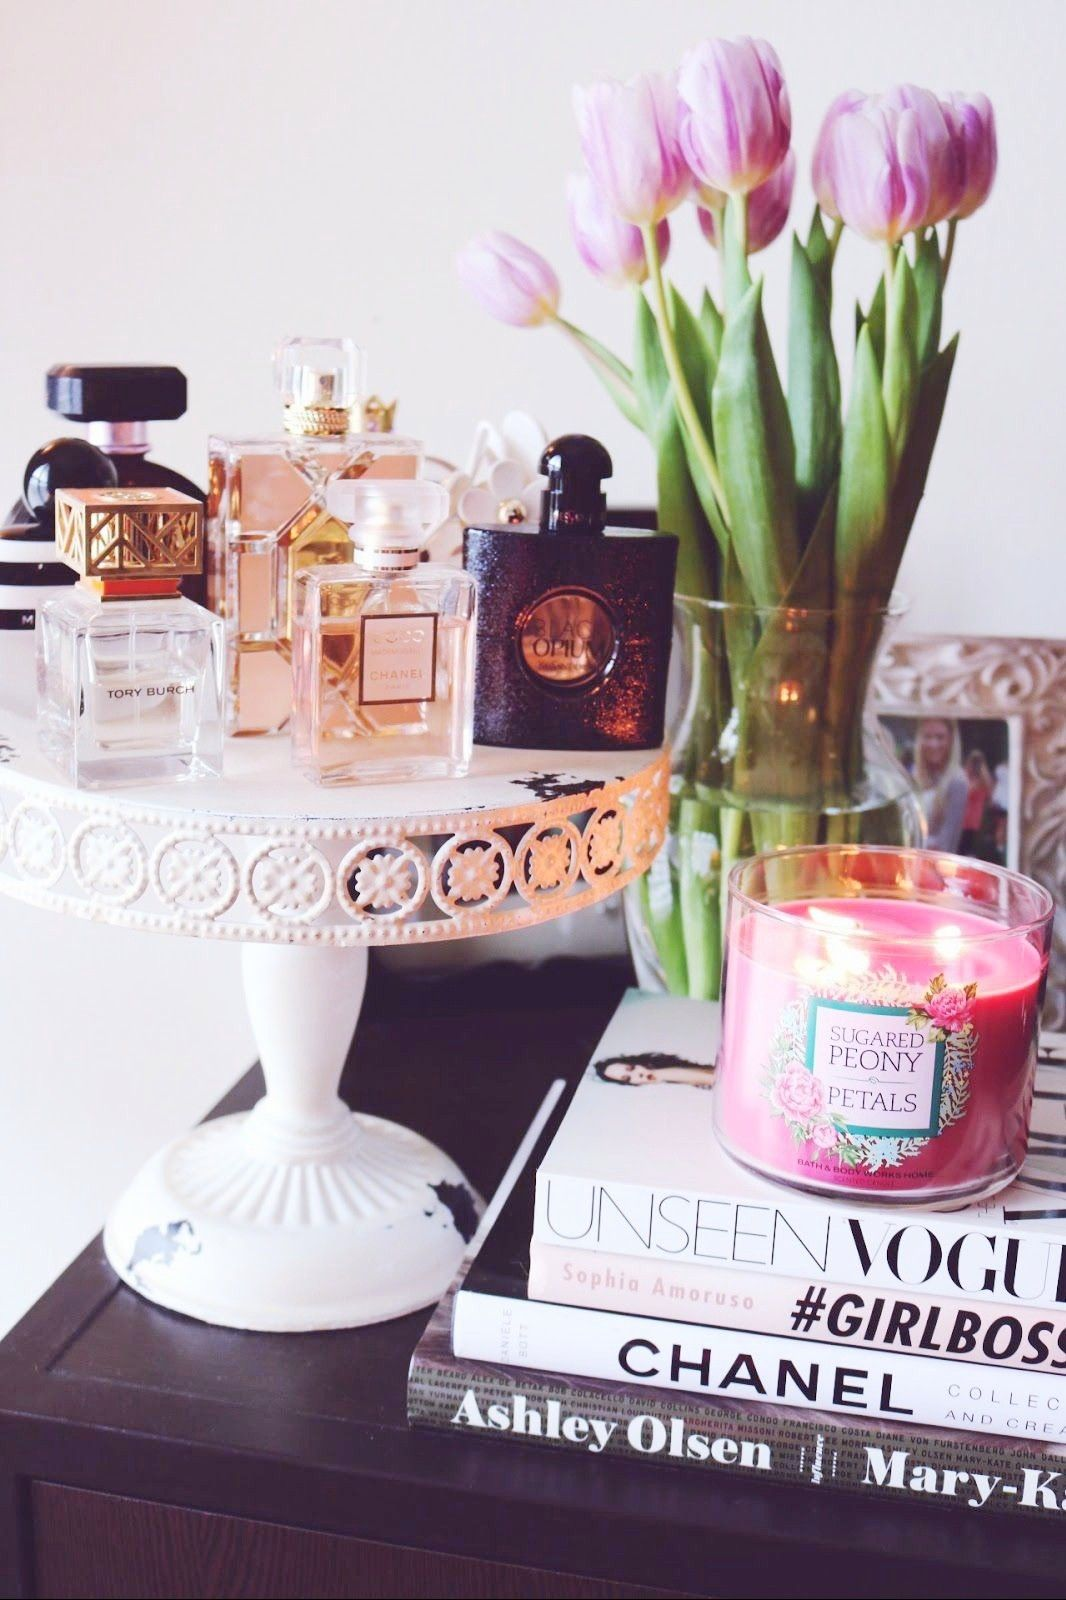 Pin by mohleen on aesthetic → in 2020 Perfume display